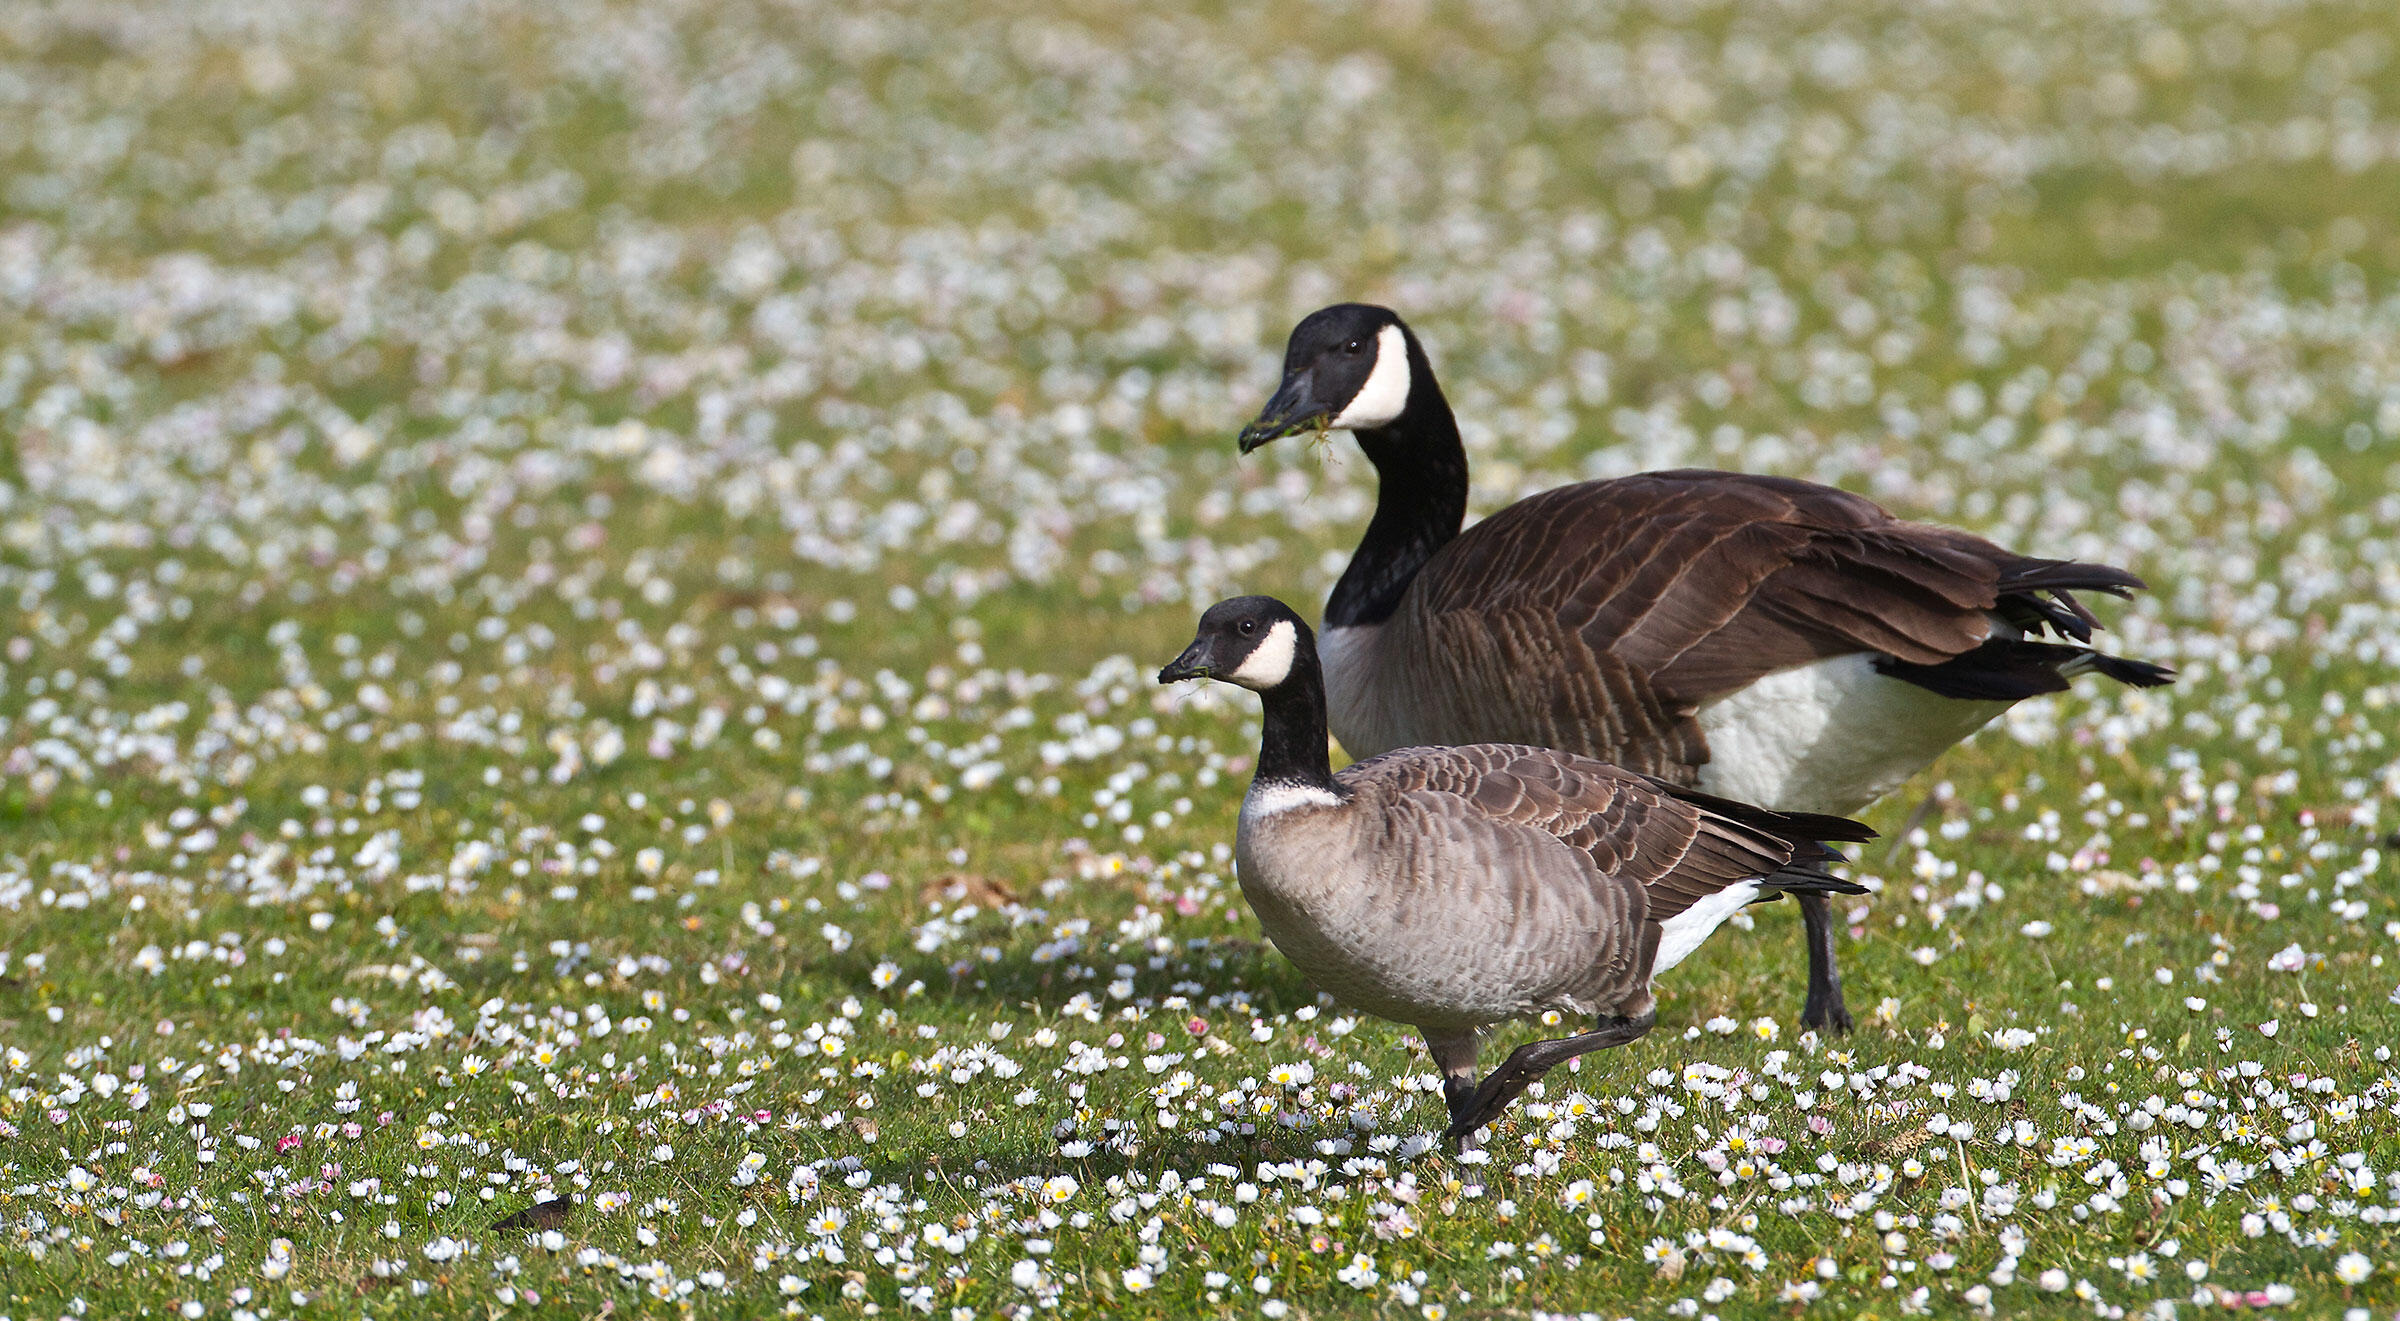 """The Cackling Goose (left) might look like a Mini-Me of the Canada Goose (right), but in fact there are nuanced differences between them. <a href=""""https://www.flickr.com/photos/34328261@N02/8432082328/"""">Blake Matheson</a>/Flickr CC (BY-NC 2.0)"""